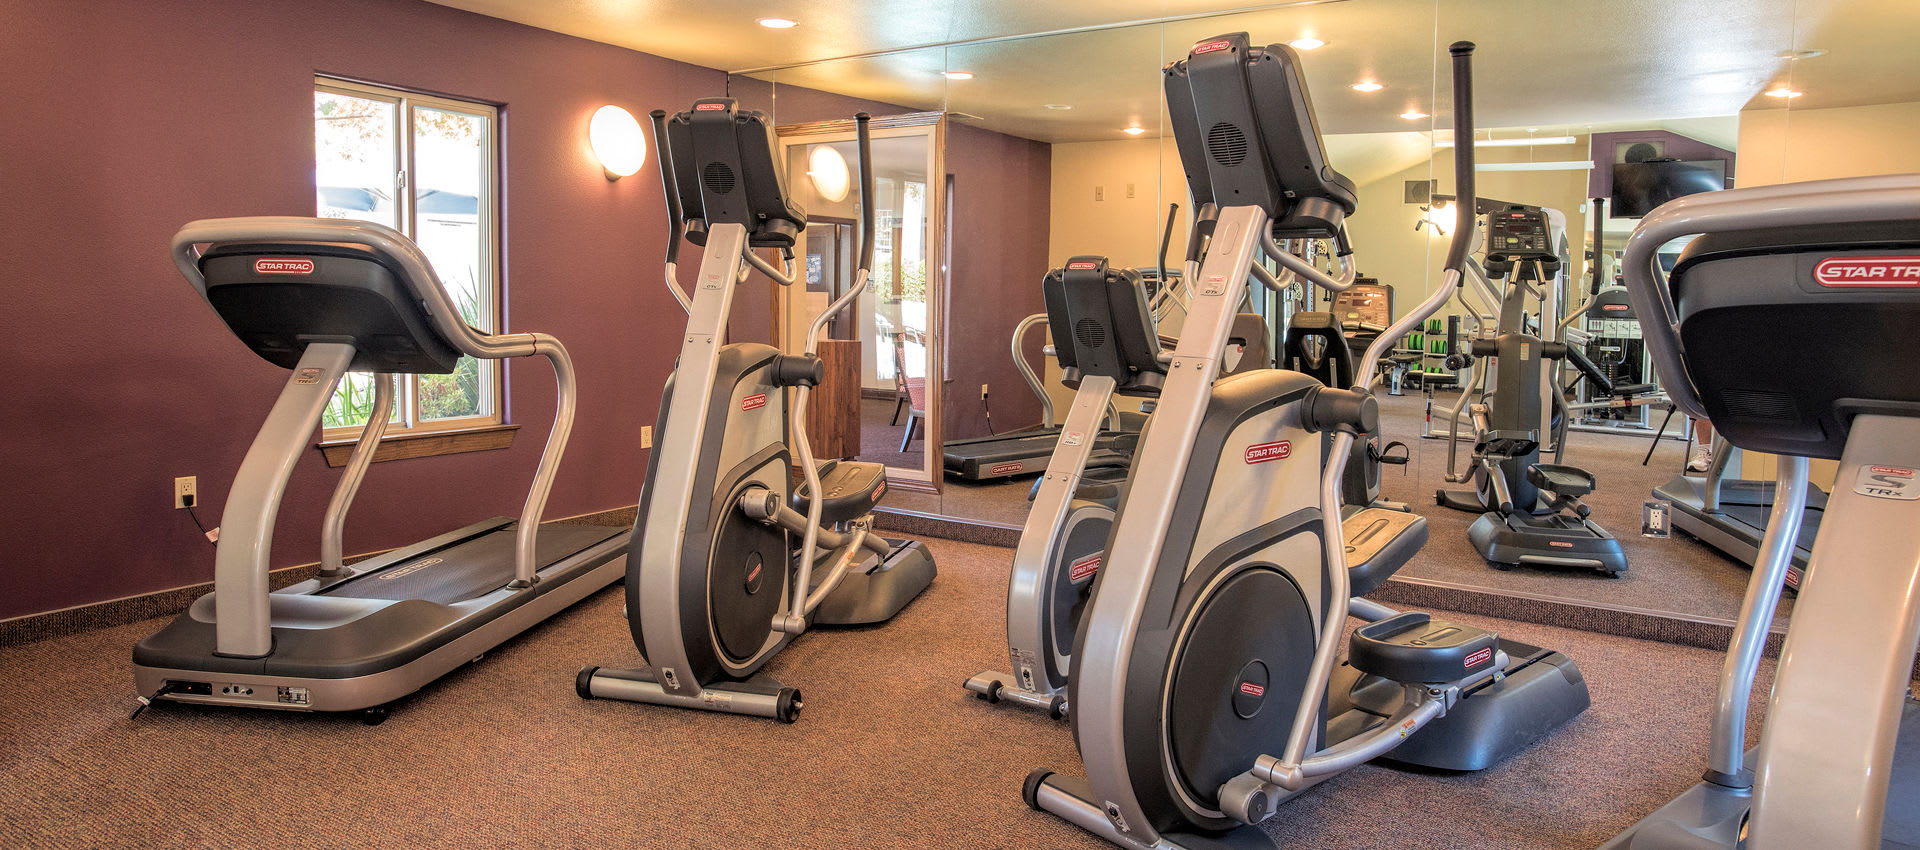 Exercise room at La Valencia Apartment Homes in Campbell, California